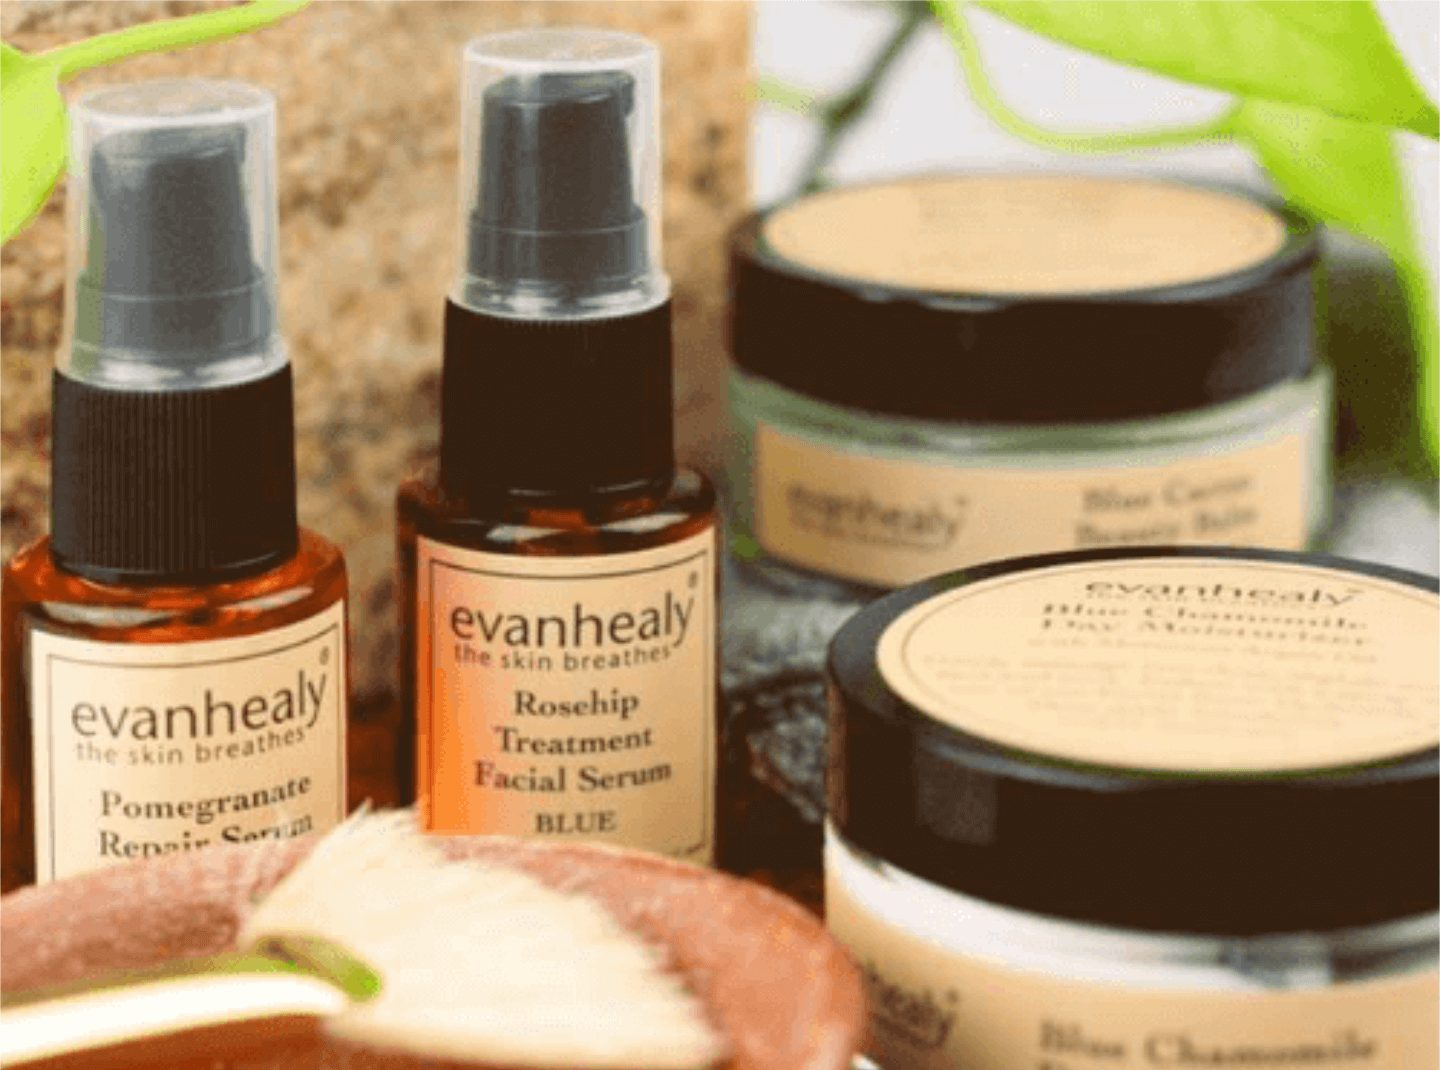 image of evanhealy products